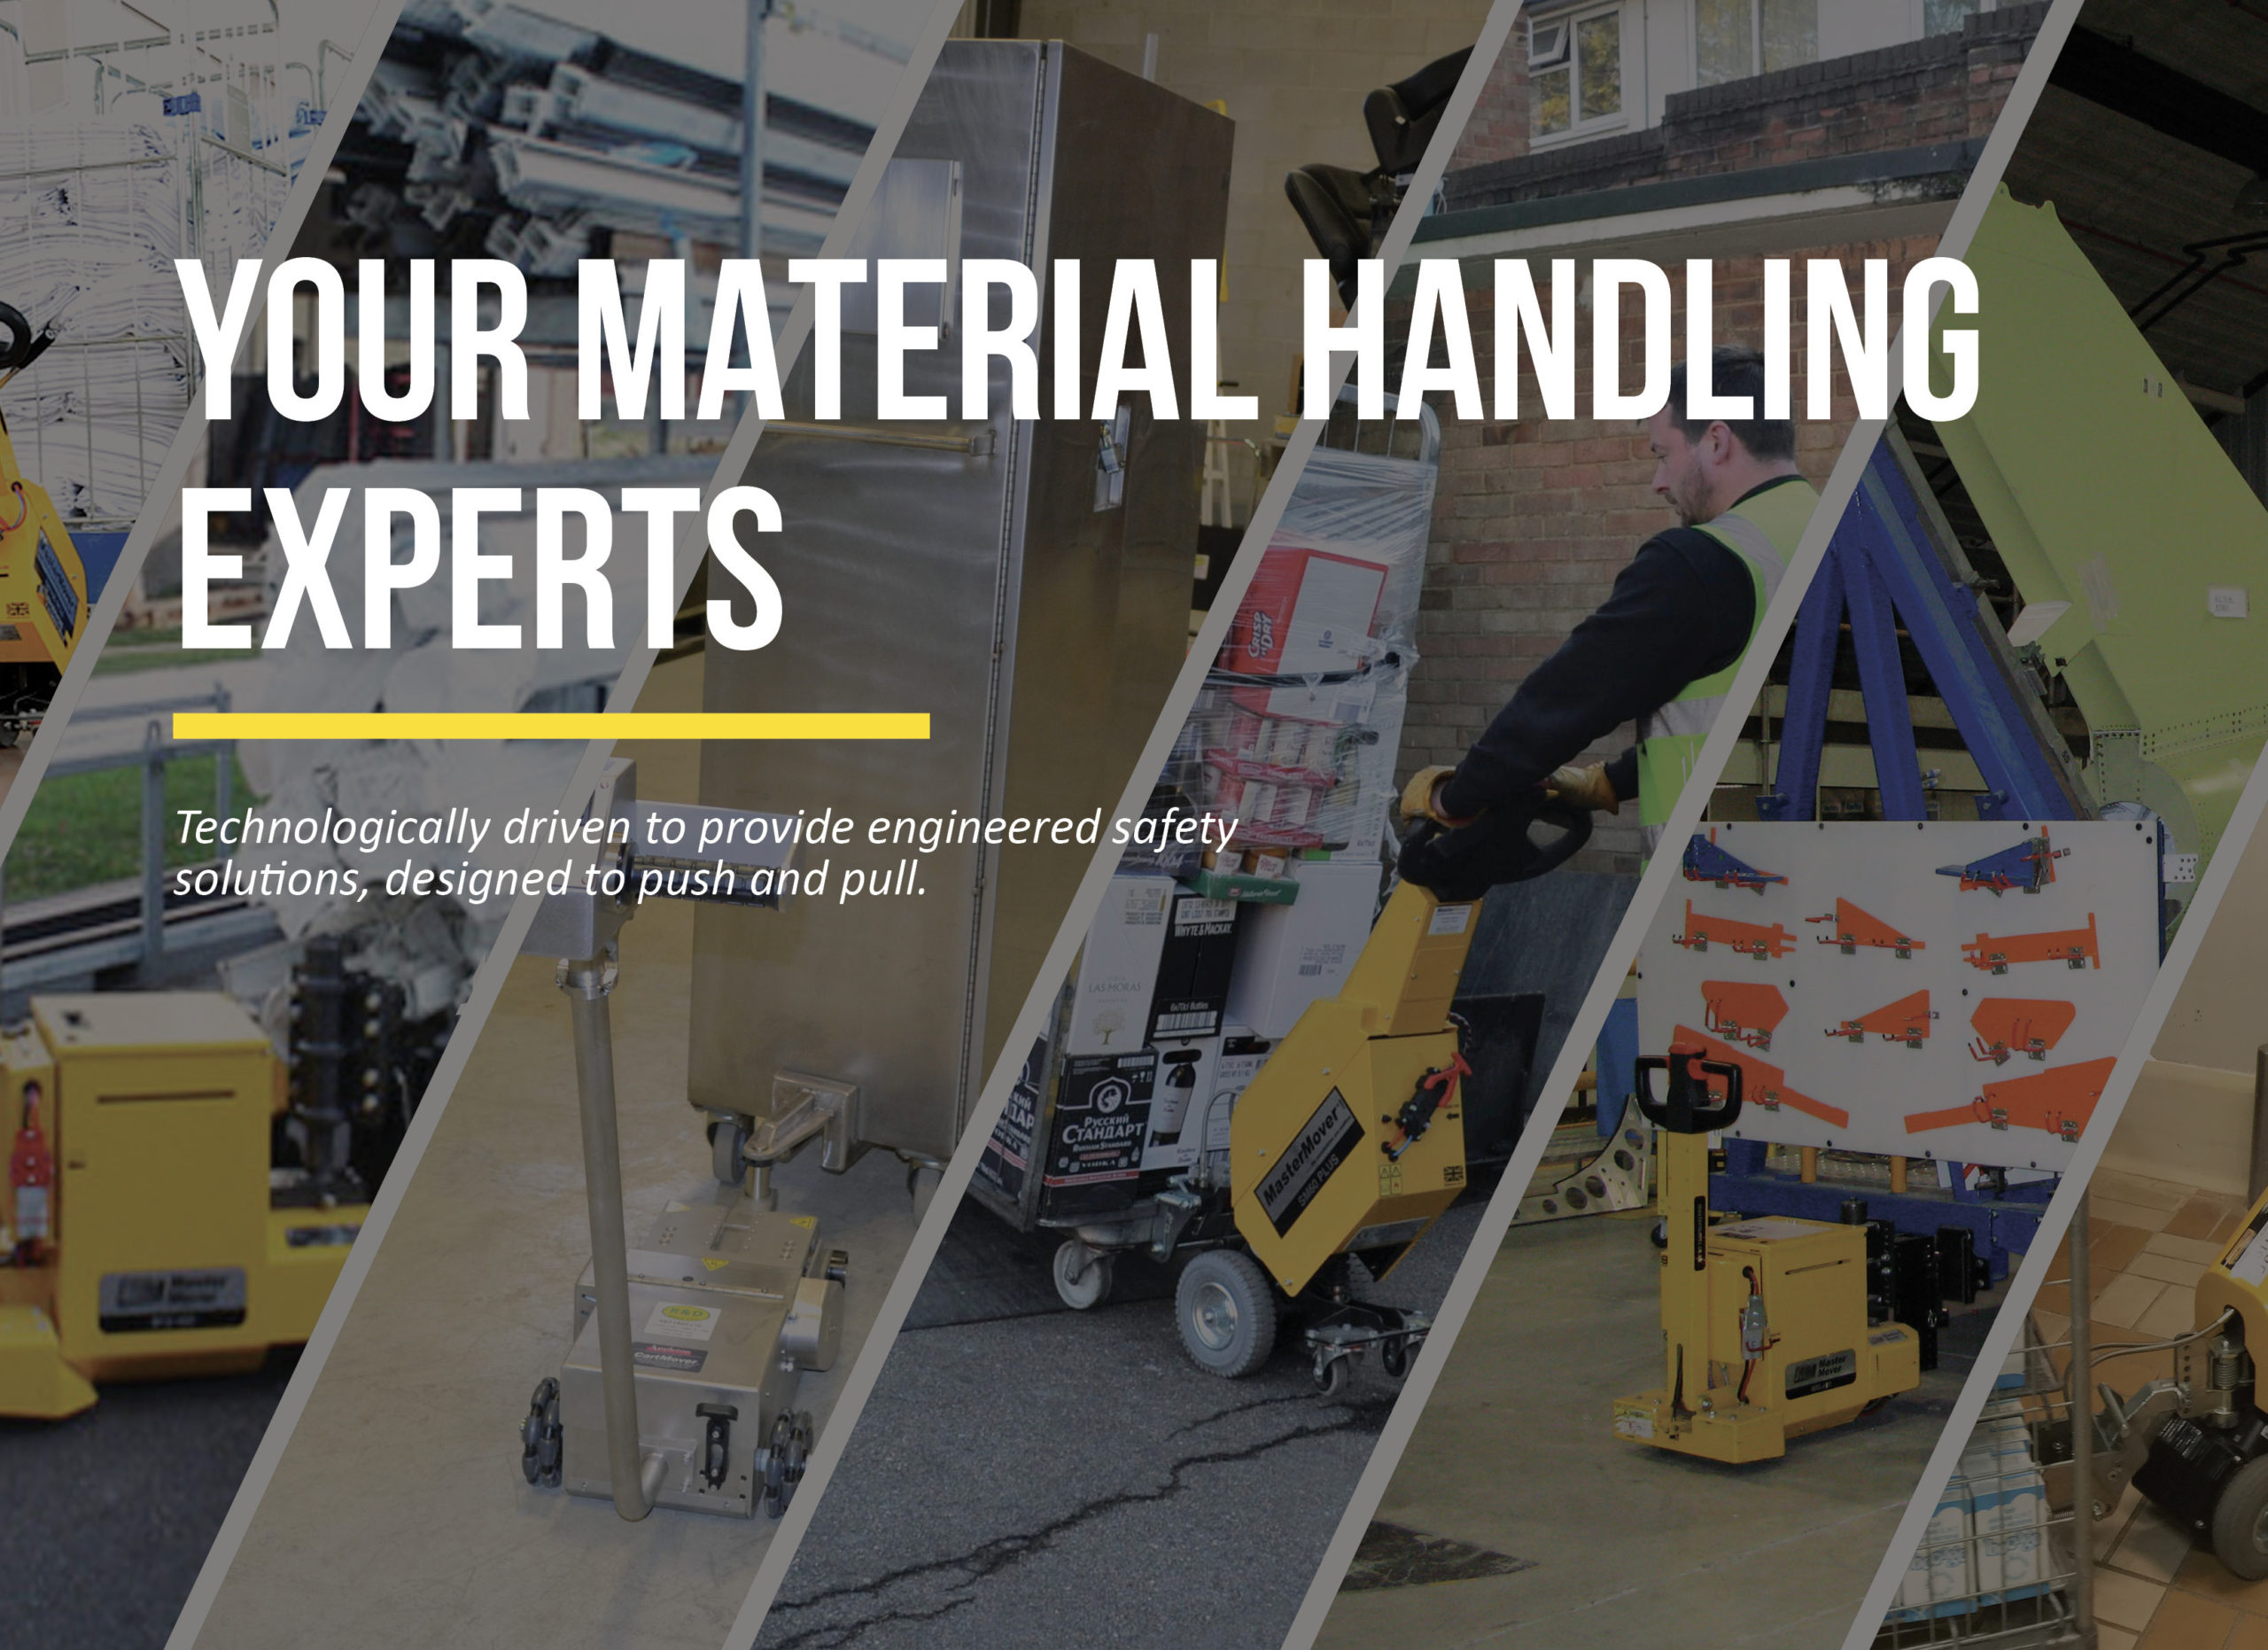 Your Material Handling Experts